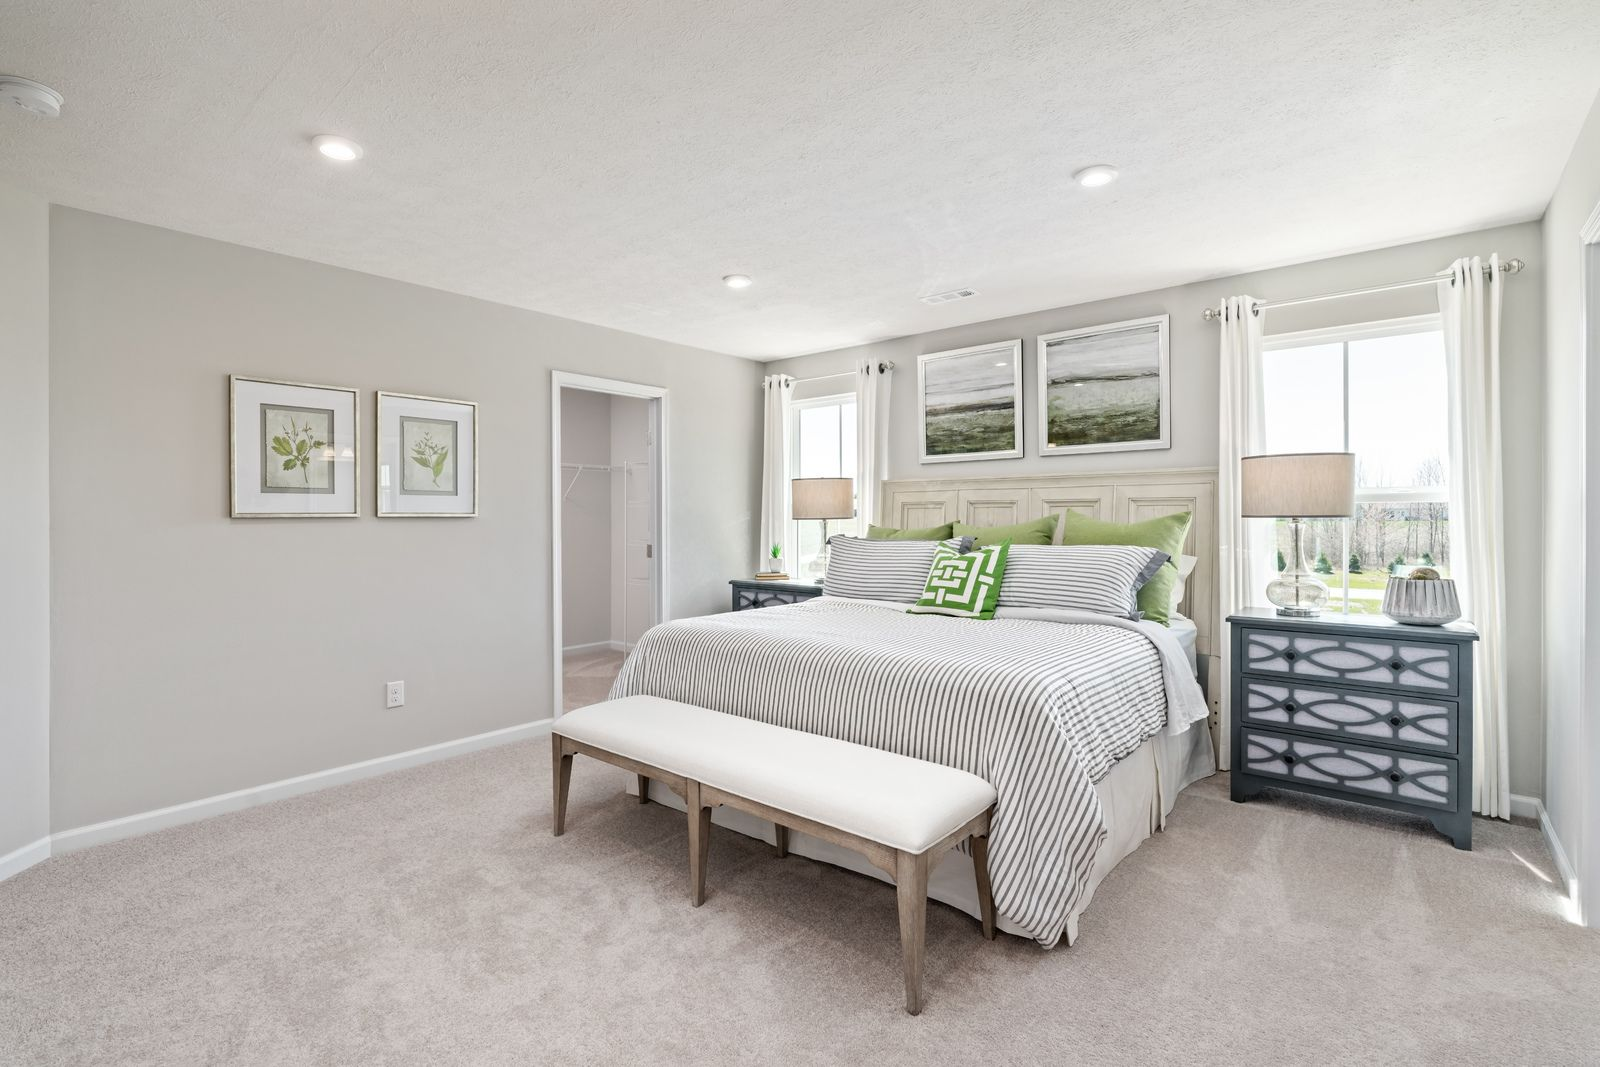 Bedroom featured in the Ferncliff By Ryan Homes in Rochester, NY